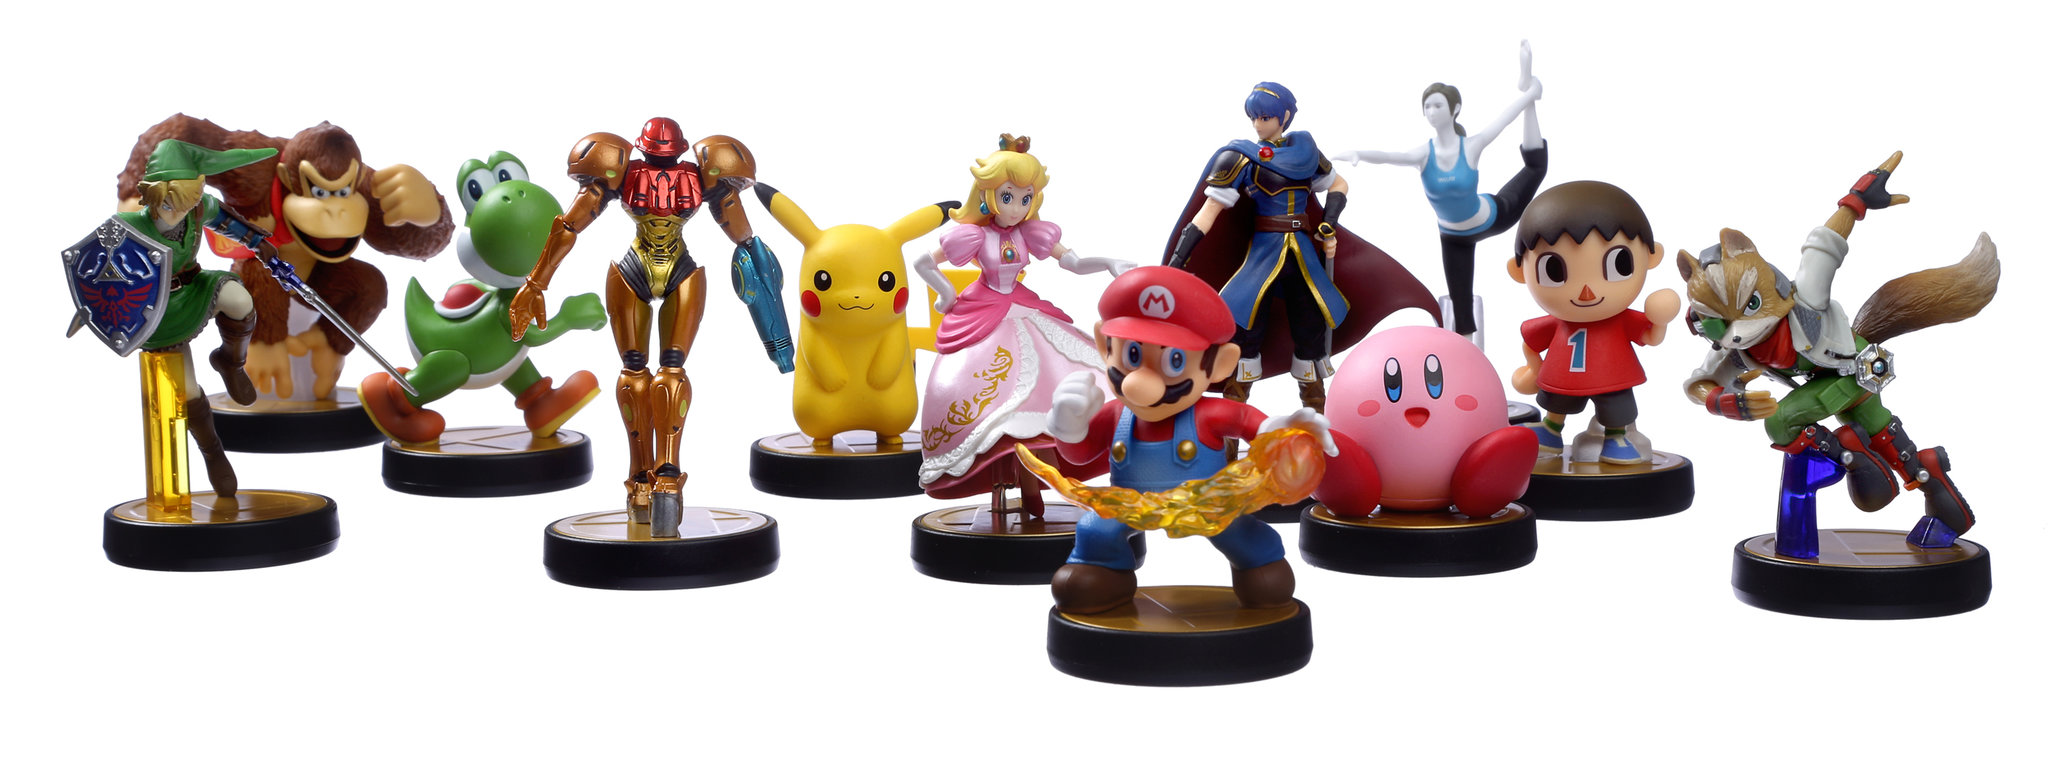 Video Games Figures